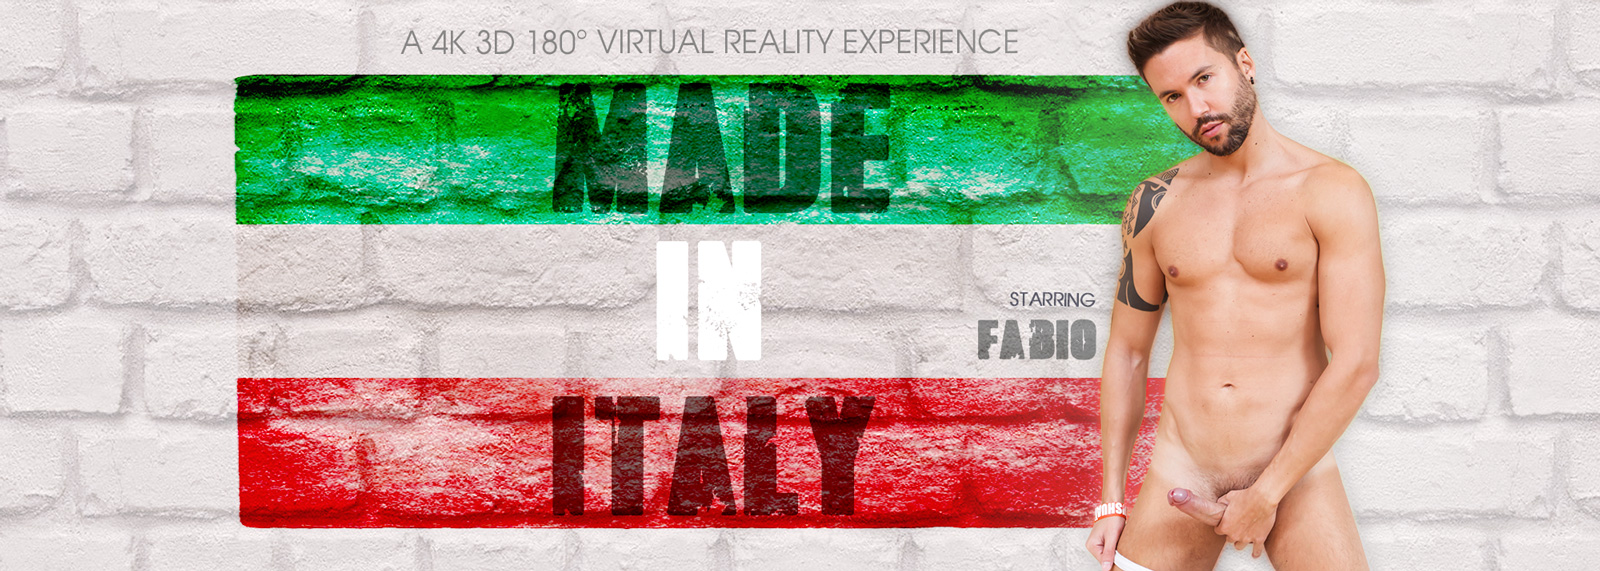 Made in Italy - VR Porn Video, Starring Fabio